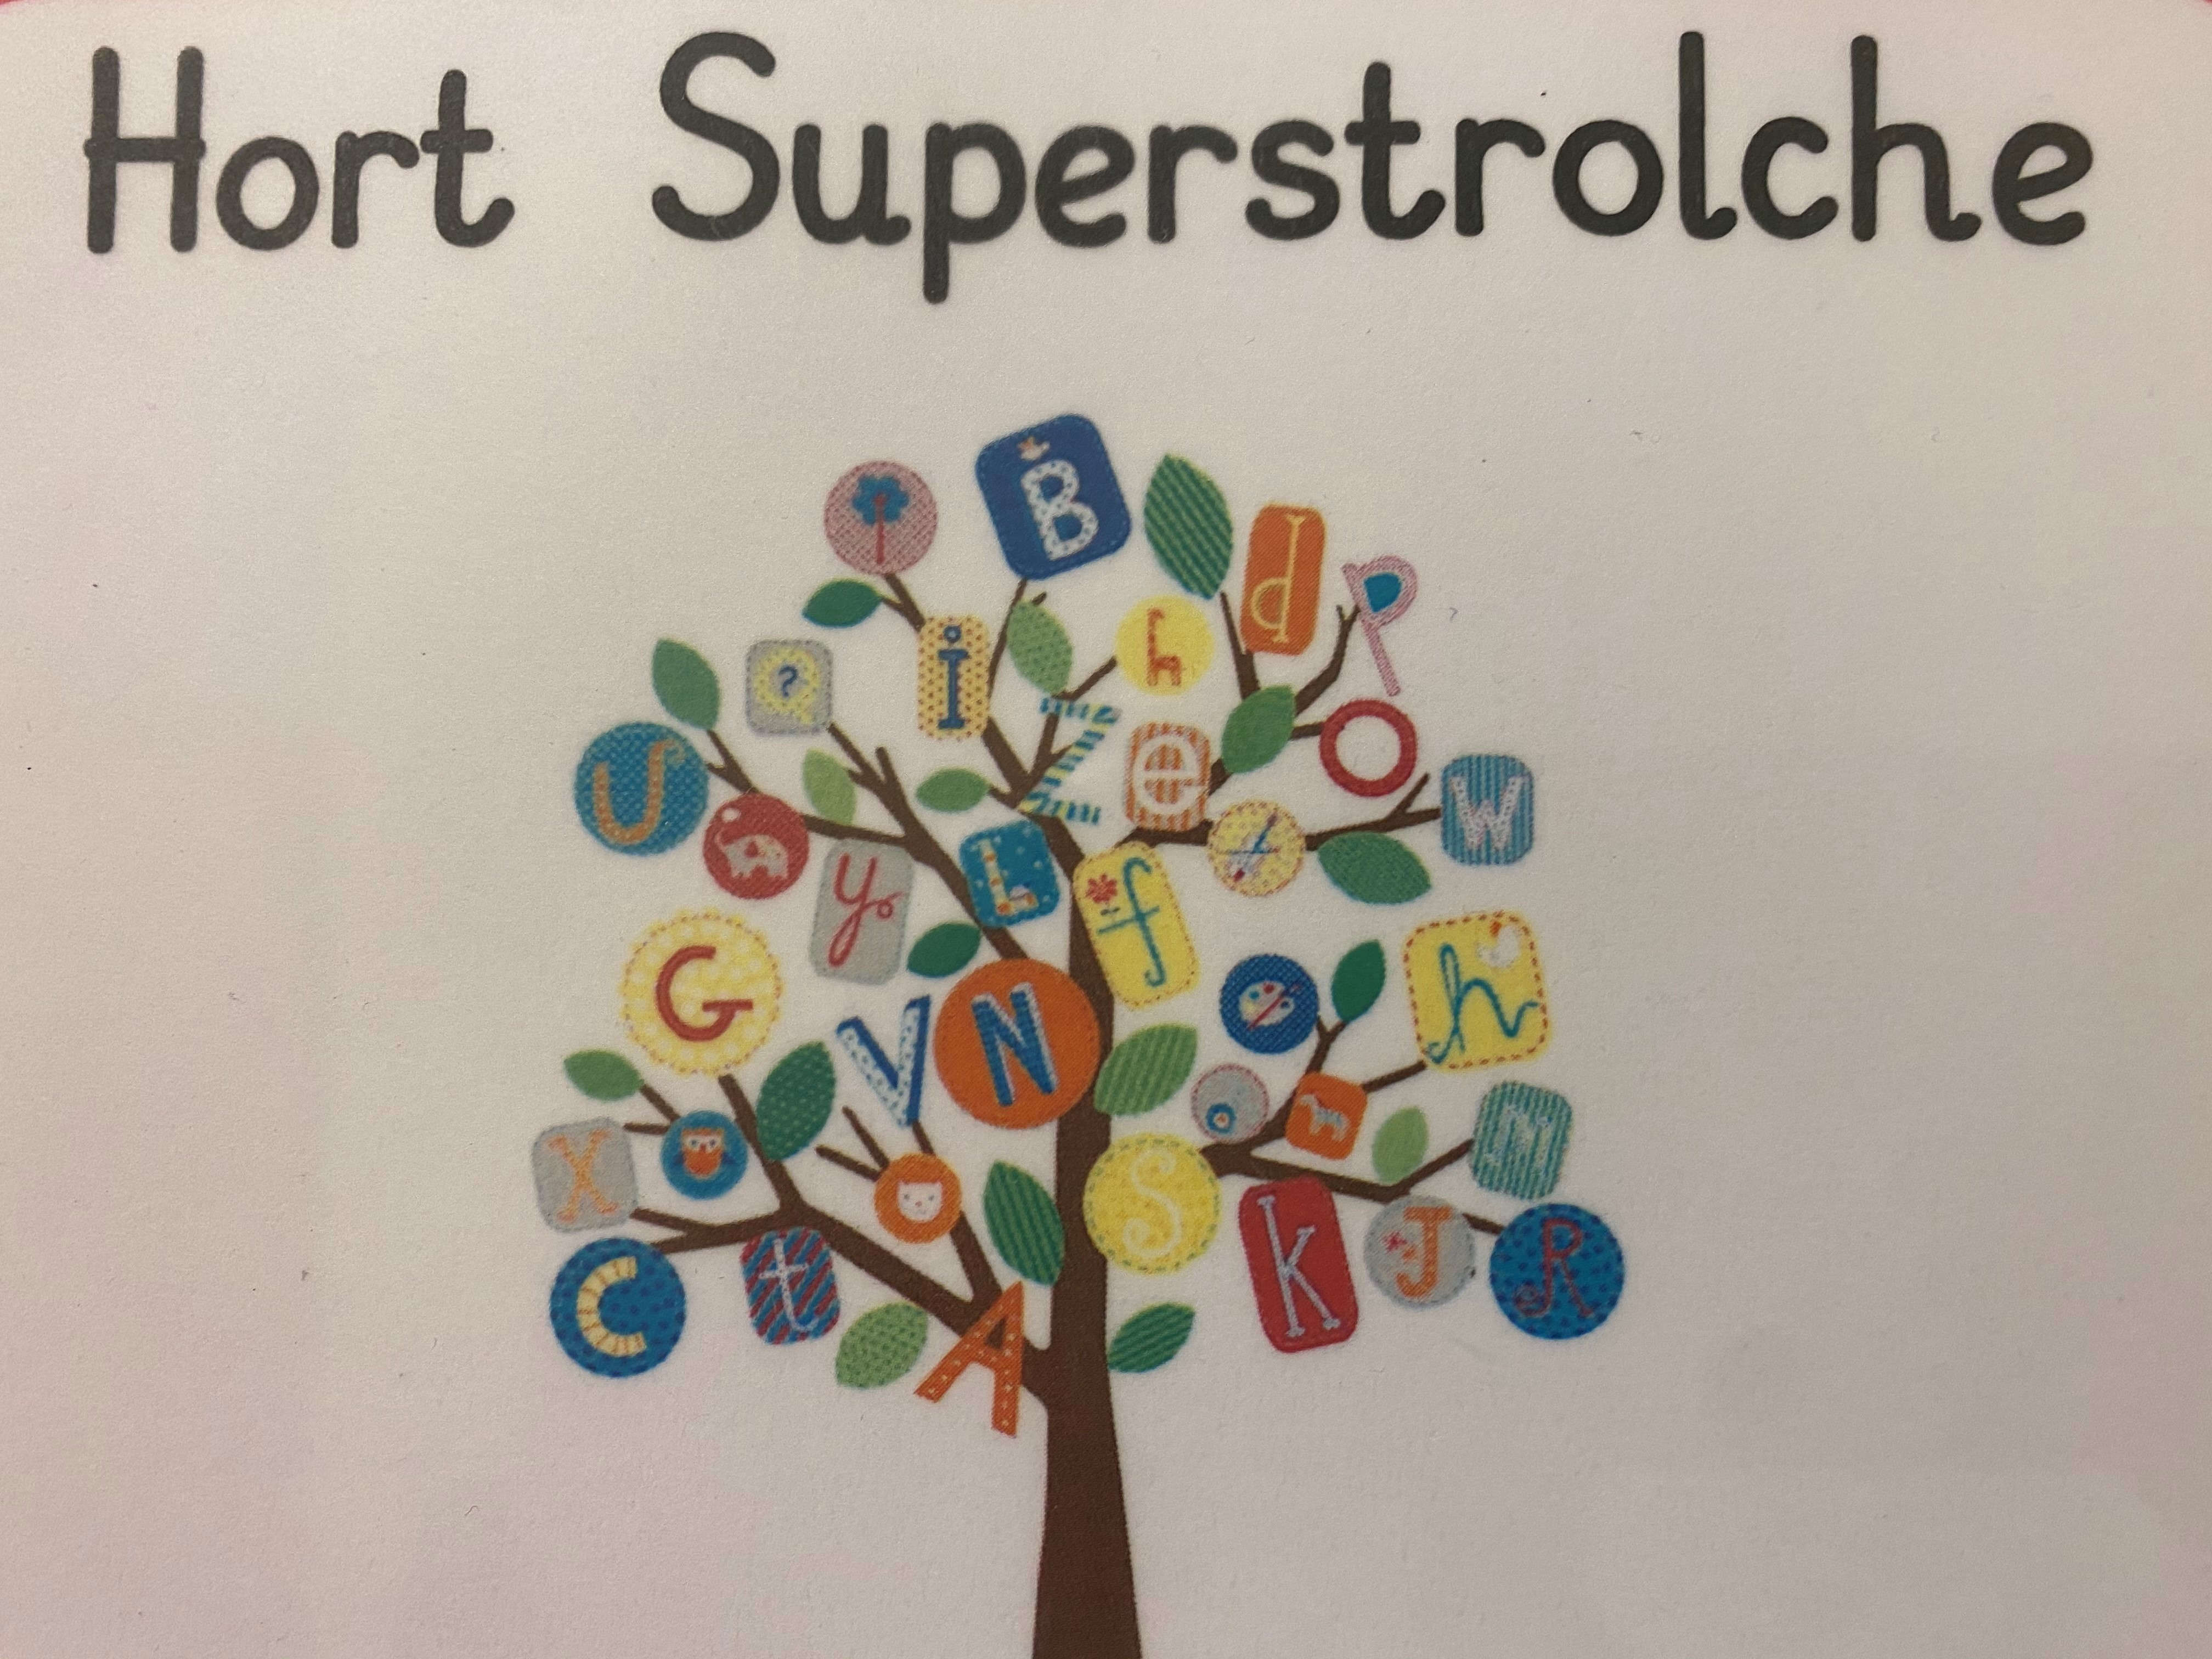 Hort Superstrolche